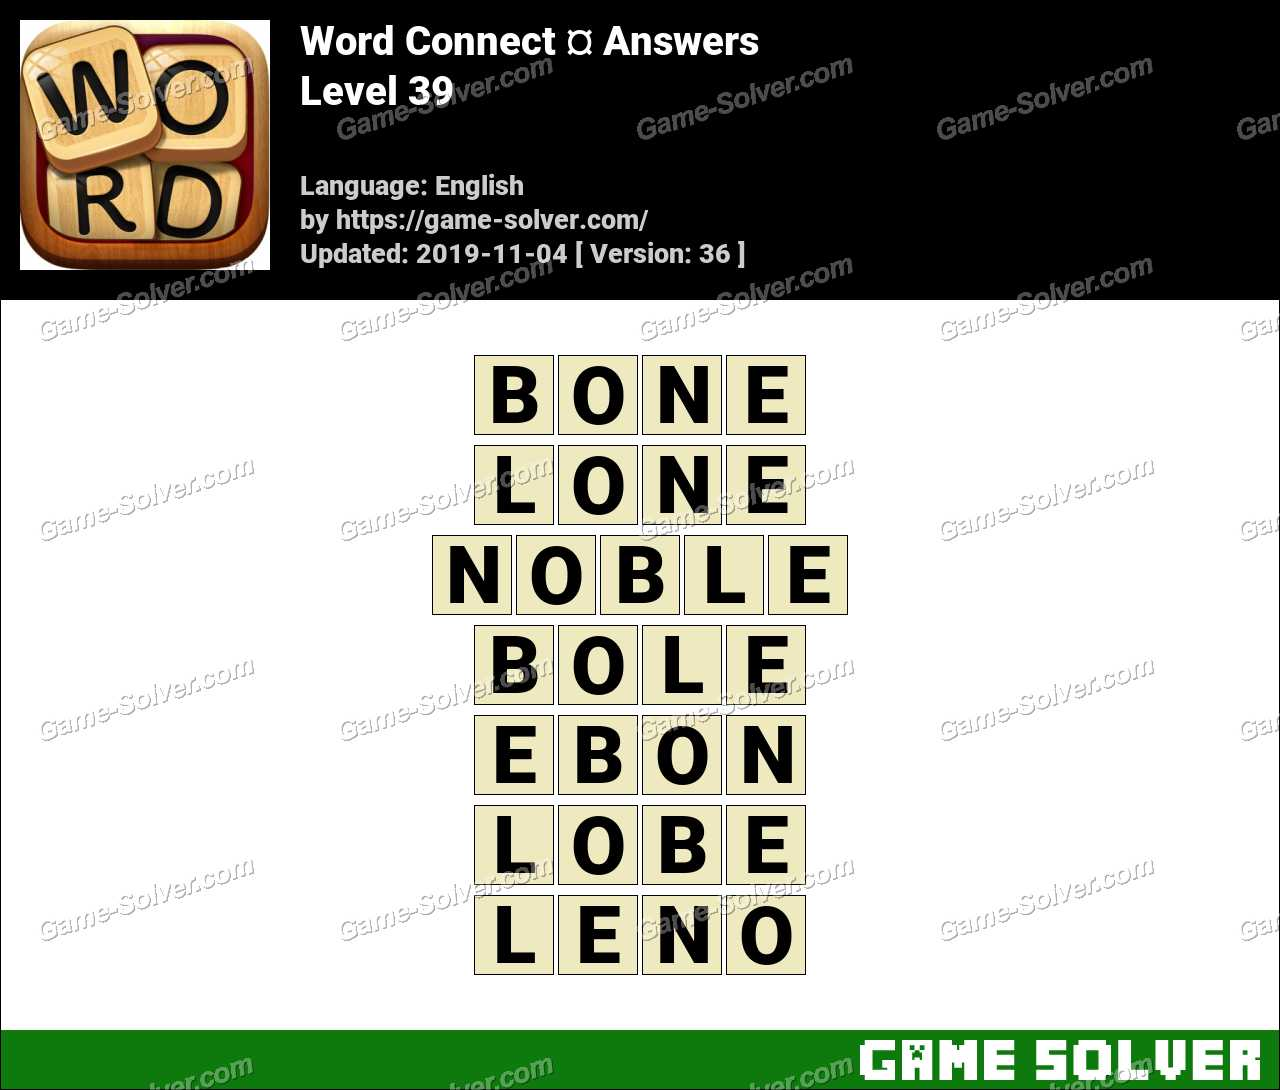 Word Connect Level 39 Answers